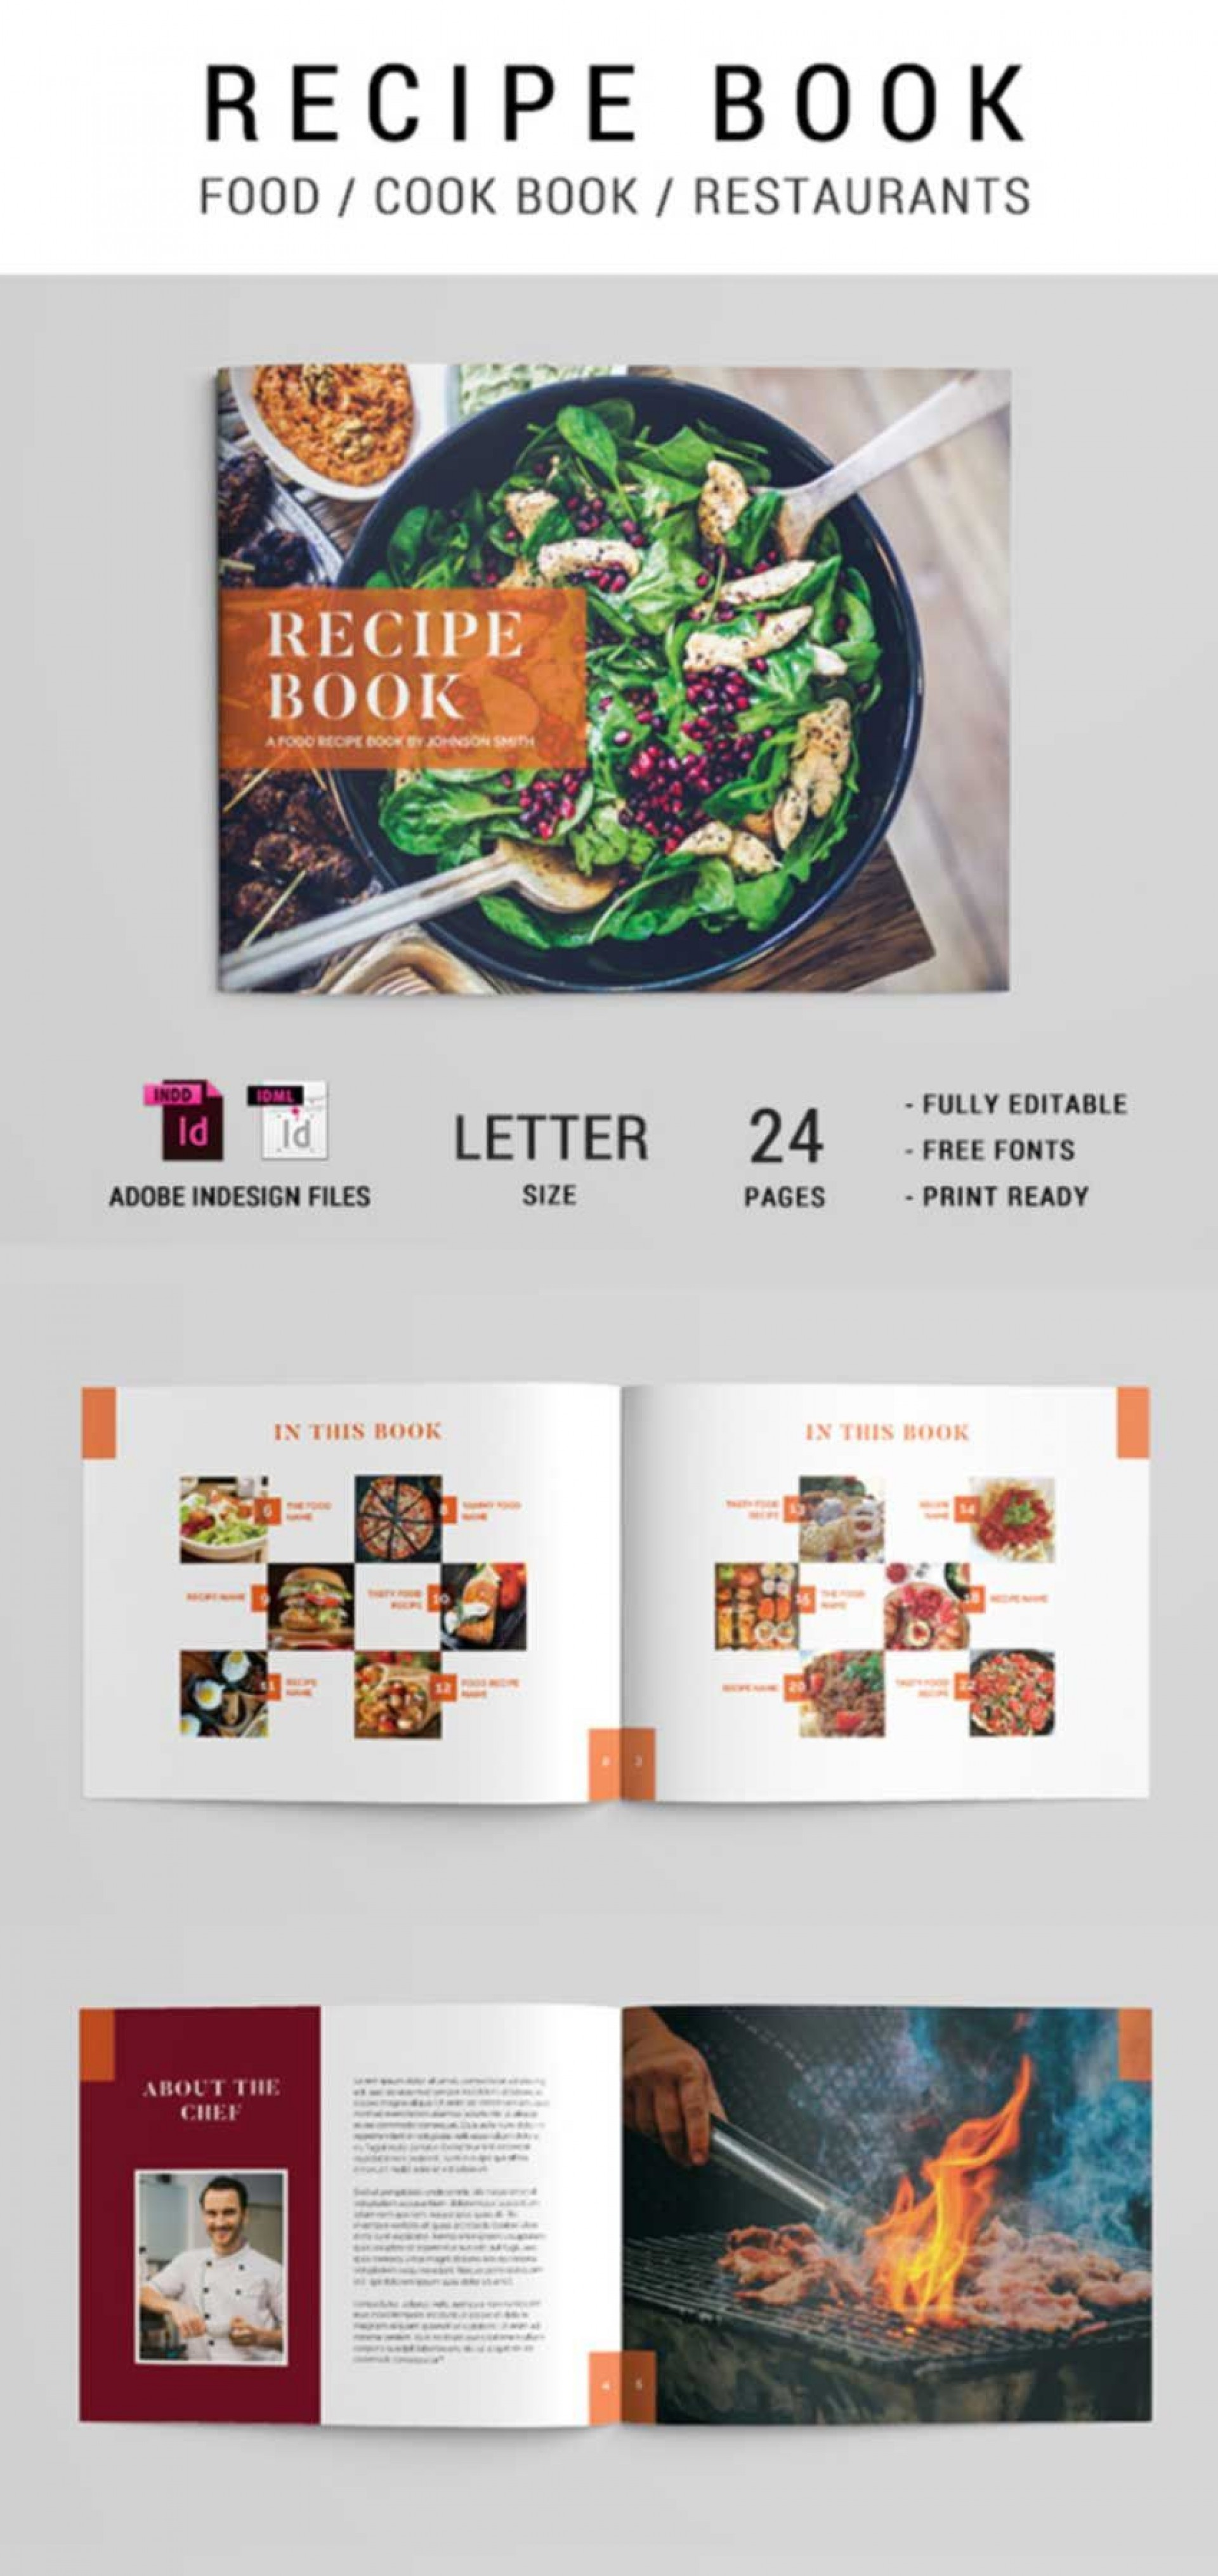 010 Stunning Create Your Own Cookbook Template Photo  Make Free My1920